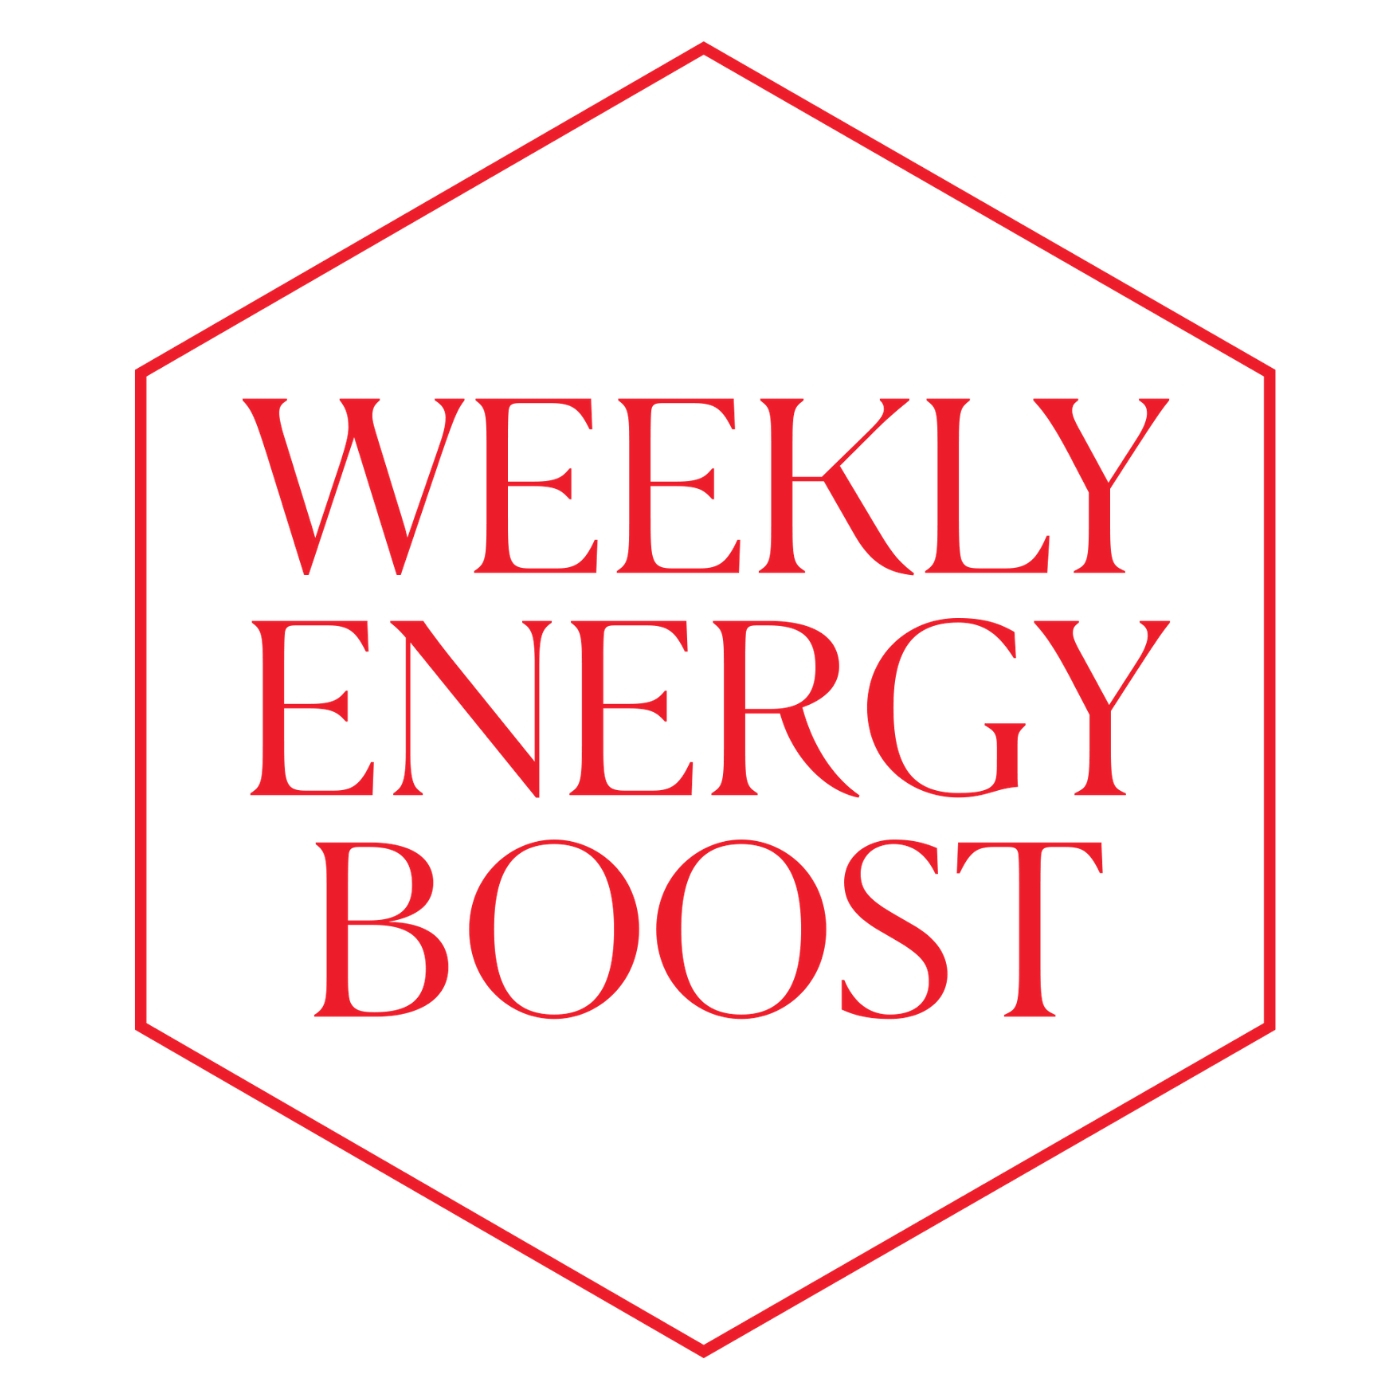 Weekly Energy Boost